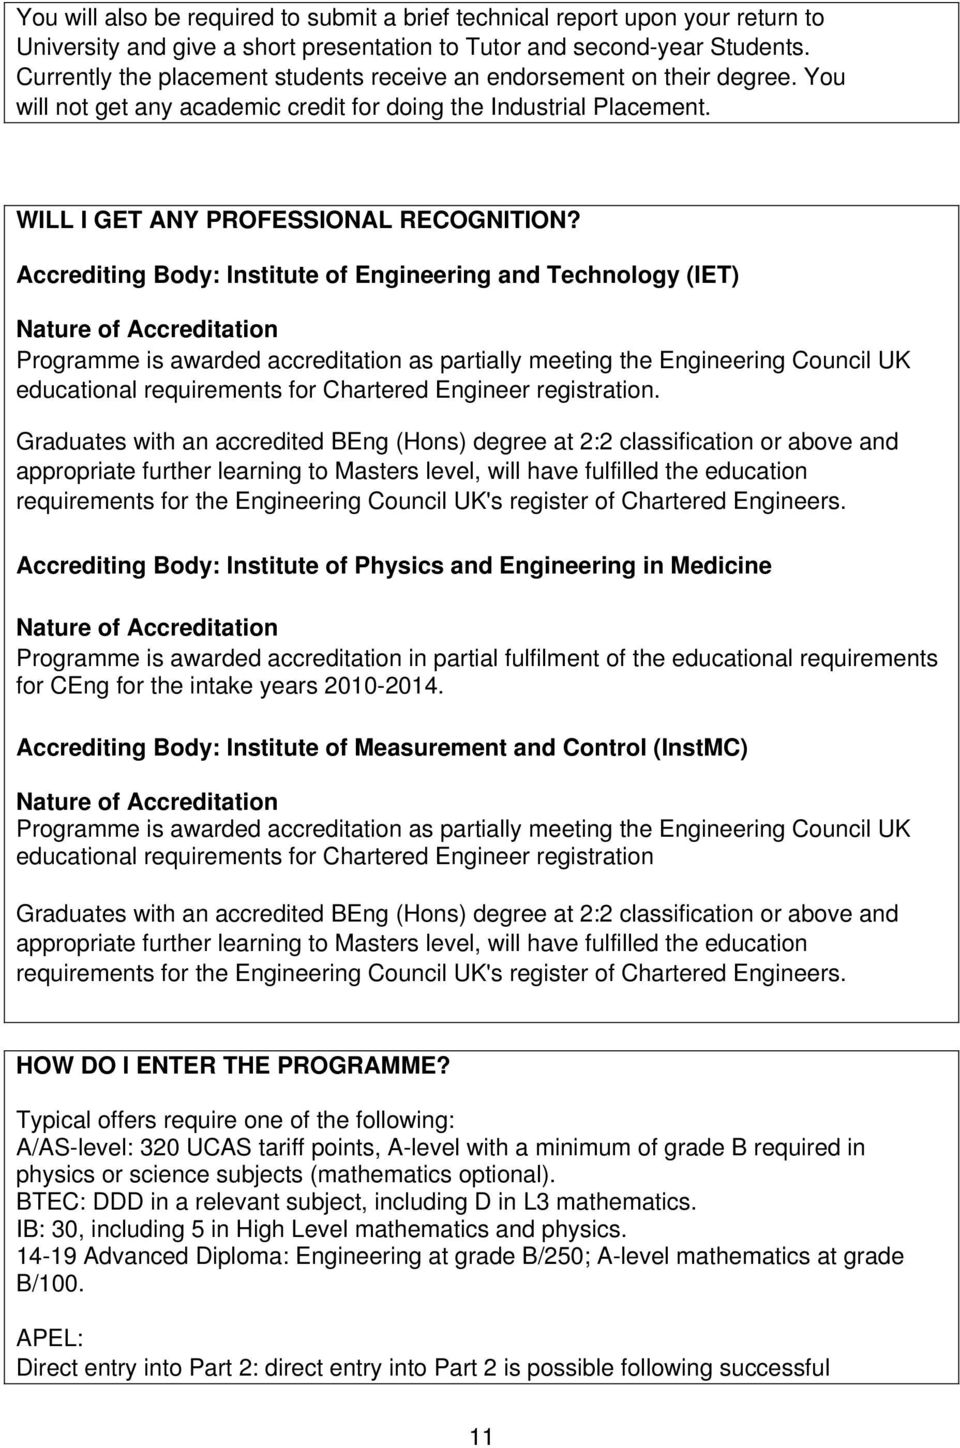 Accrediting Body: Institute of Engineering and Technology (IET) Nature of Accreditation Programme is awarded accreditation as partially meeting the Engineering Council UK educational requirements for